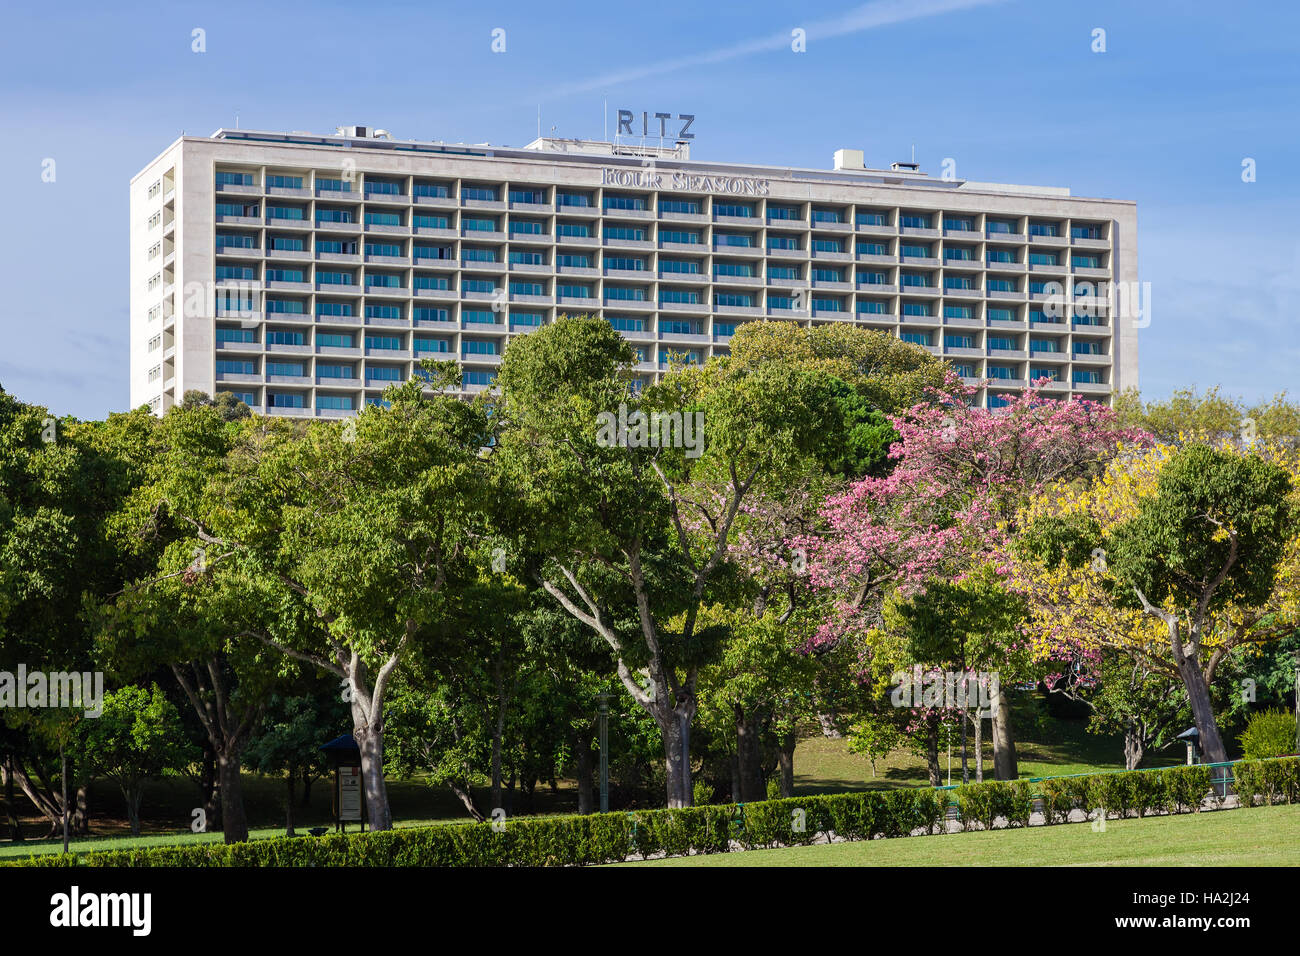 Lisbon, Portugal - October 19, 2016: The Four Seasons Hotel Ritz. A five star hotel located next to the famous Eduardo - Stock Image